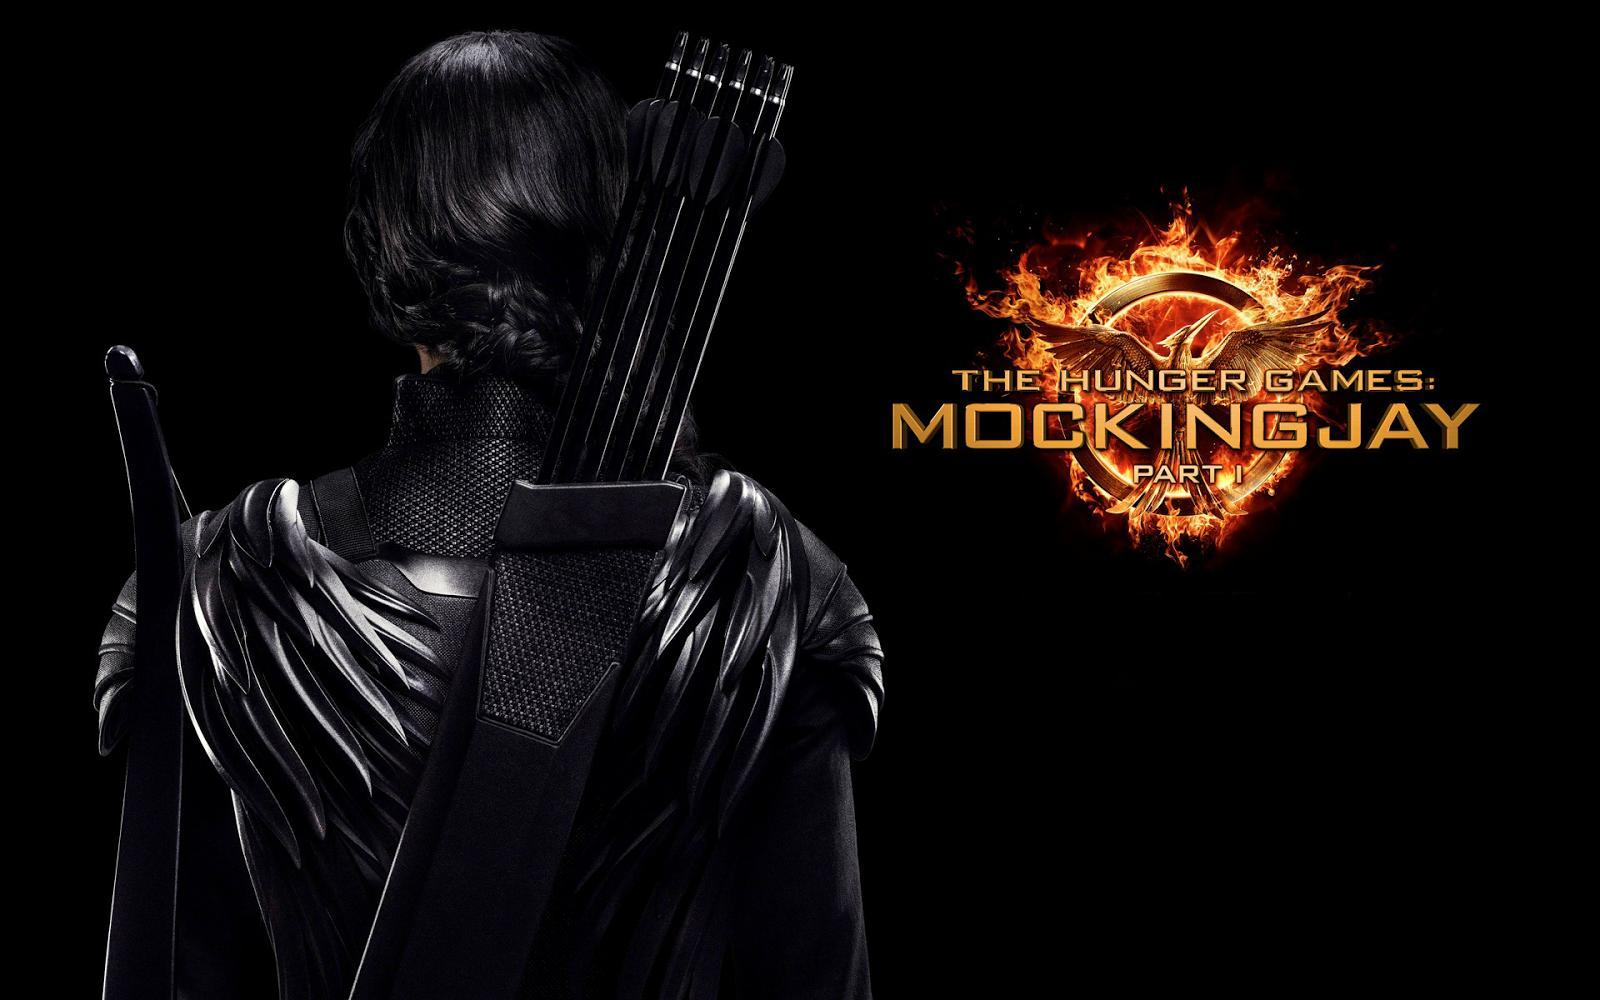 The-Hunger-Games-Mockingjay-Part-1-Movie-Wallpaper